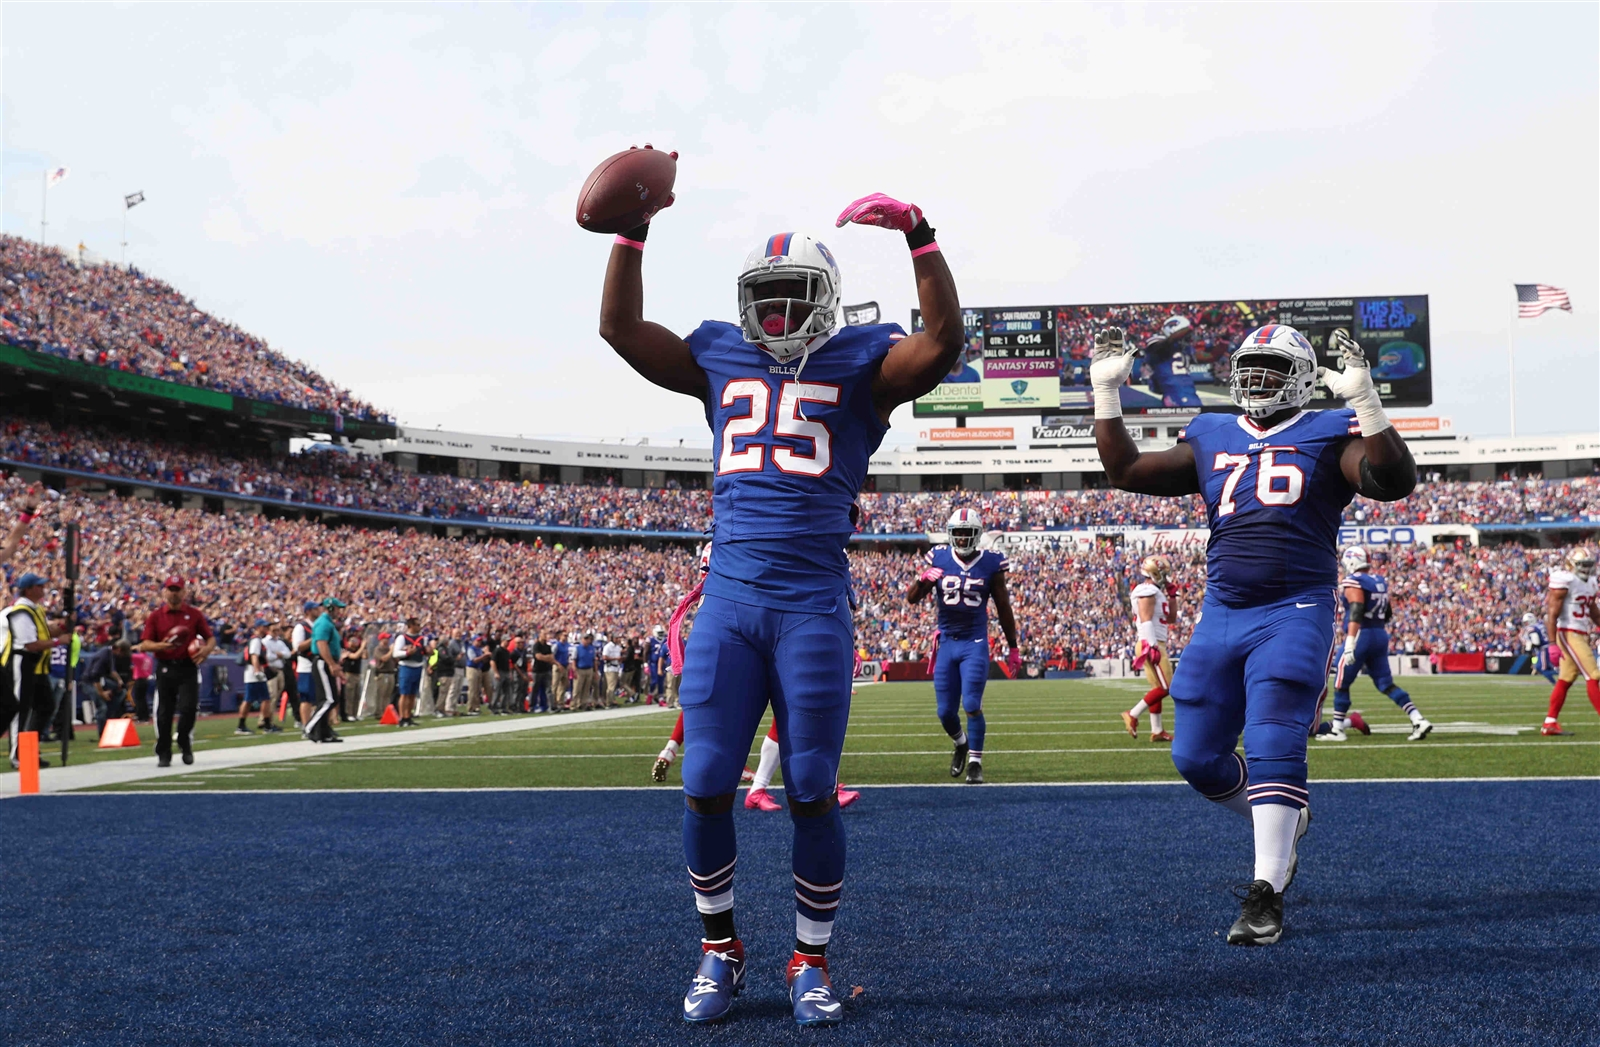 LeSean McCoy celebrates the first of his three touchdowns. (James P. McCoy/Buffalo News)